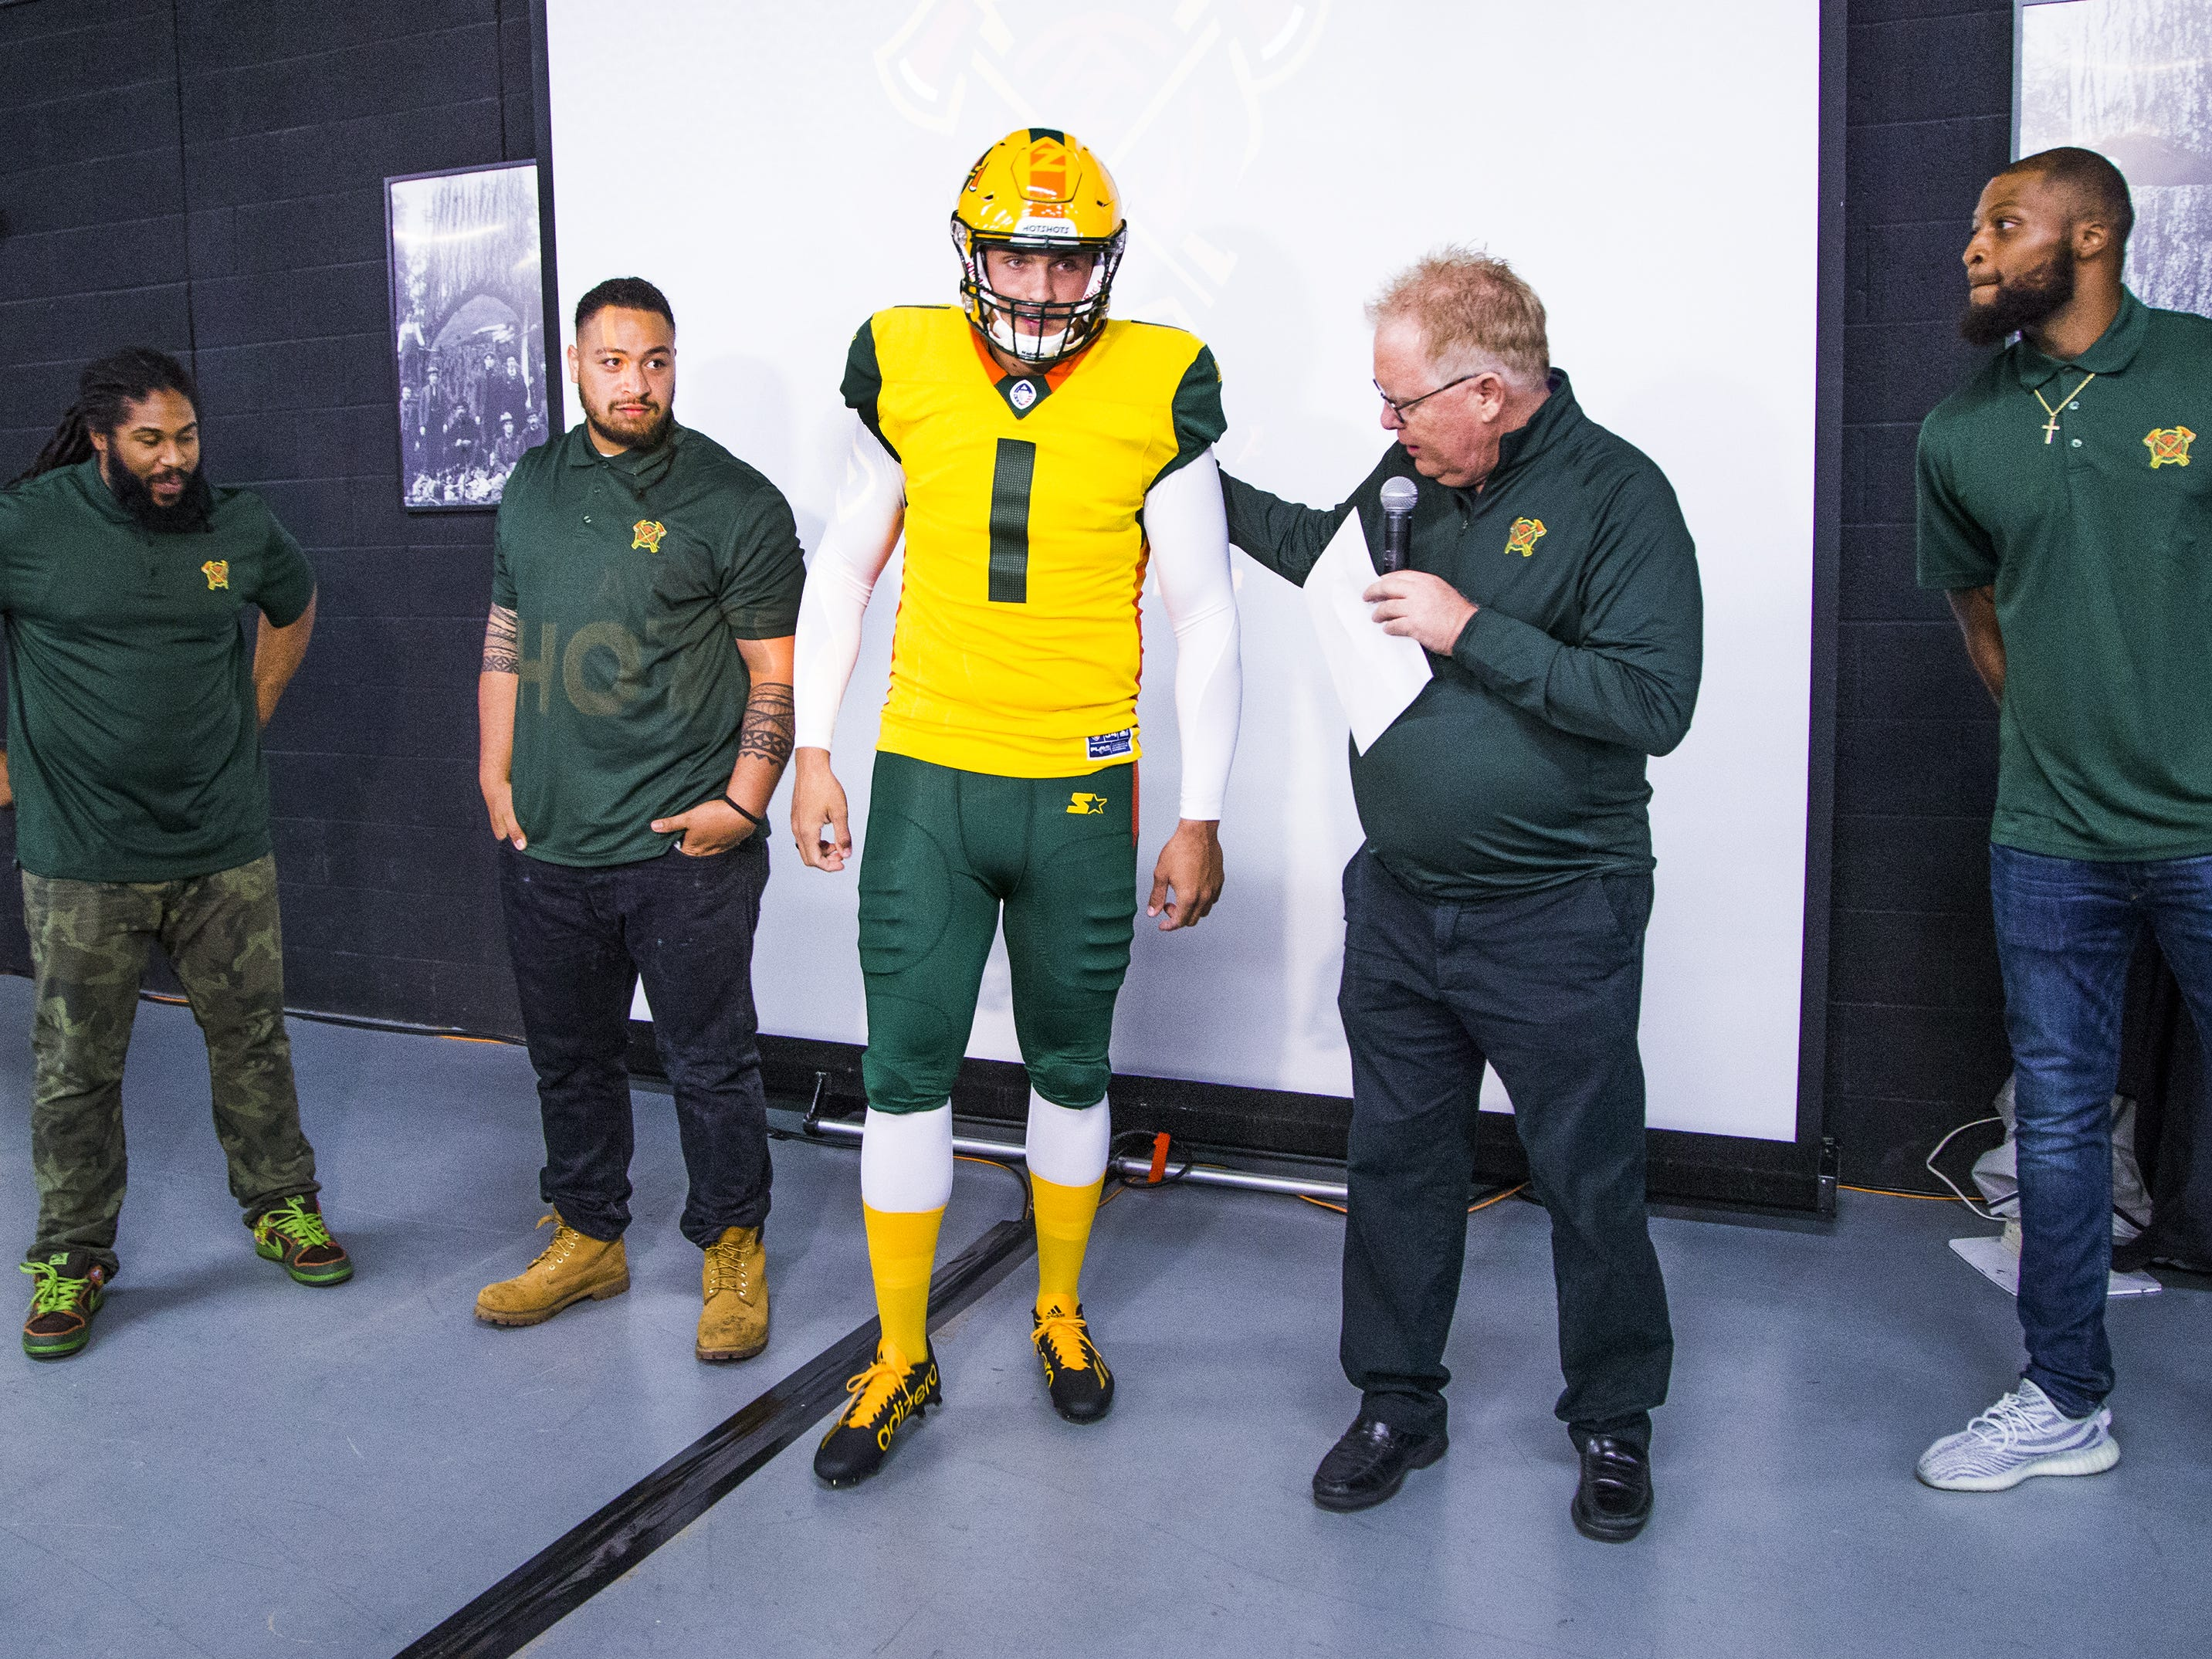 Nick Dooley, a longsnapper, wears the new uniform for the Arizona Hotshots professional football team as radio announcer Jeff Munn shows points out uniform details at an event at Lumberjaxes in Tempe, Tuesday, November 27, 2018.